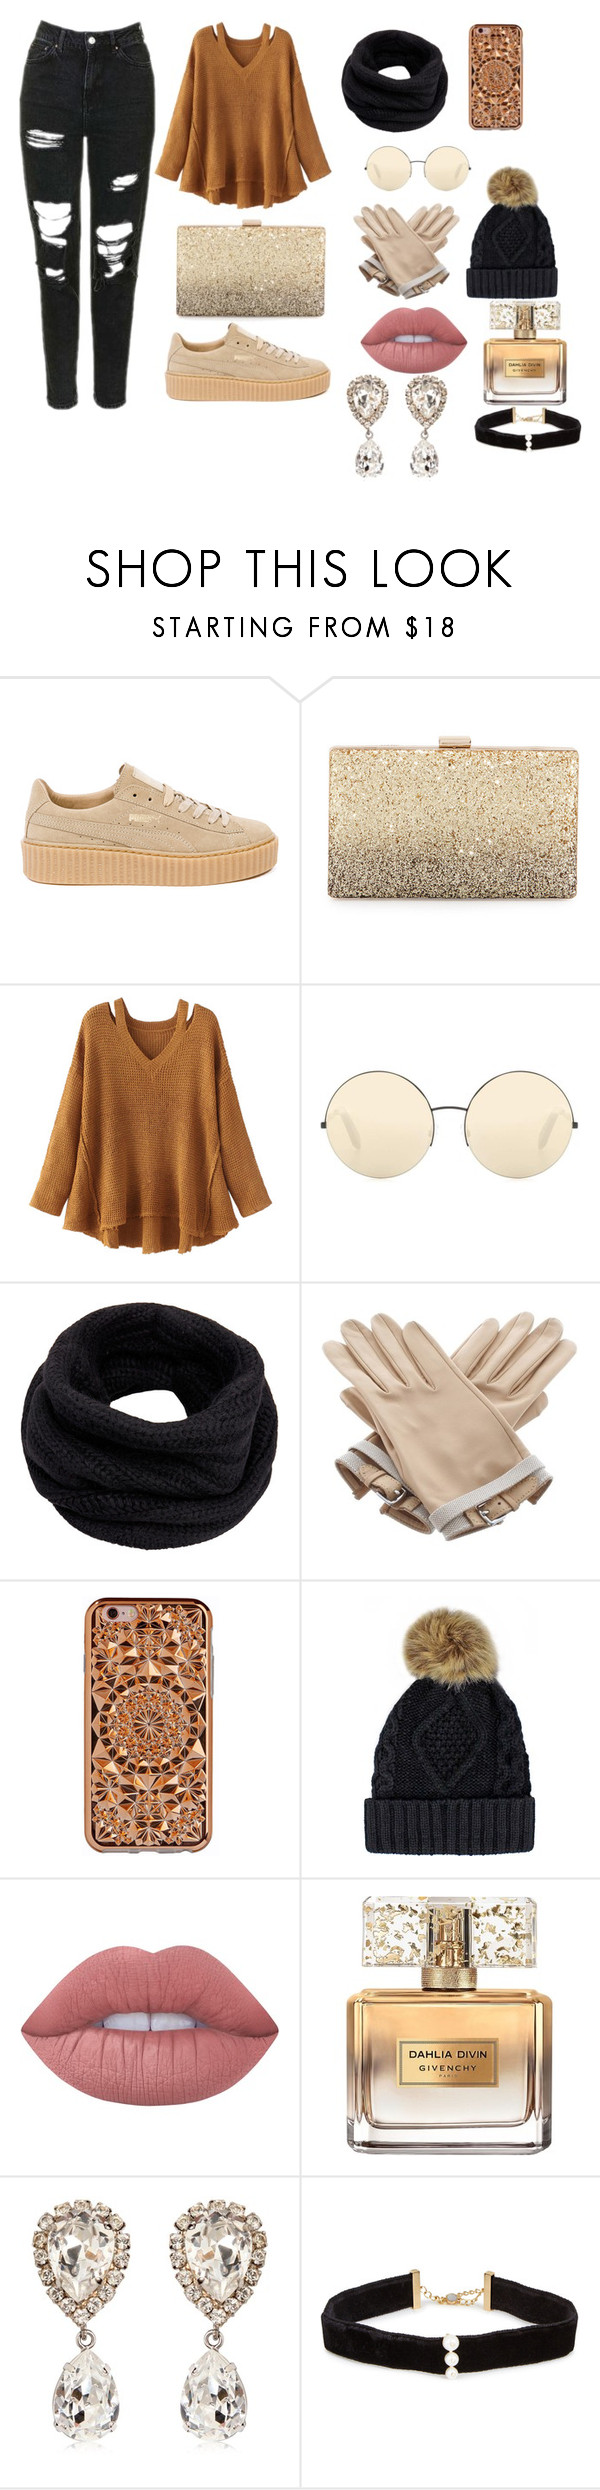 """""""todays outfit"""" by megi-queen ❤ liked on Polyvore featuring Puma, Neiman Marcus, WithChic, Victoria Beckham, Helmut Lang, Hermès, Felony Case, Lime Crime, Givenchy and Dolce&Gabbana"""